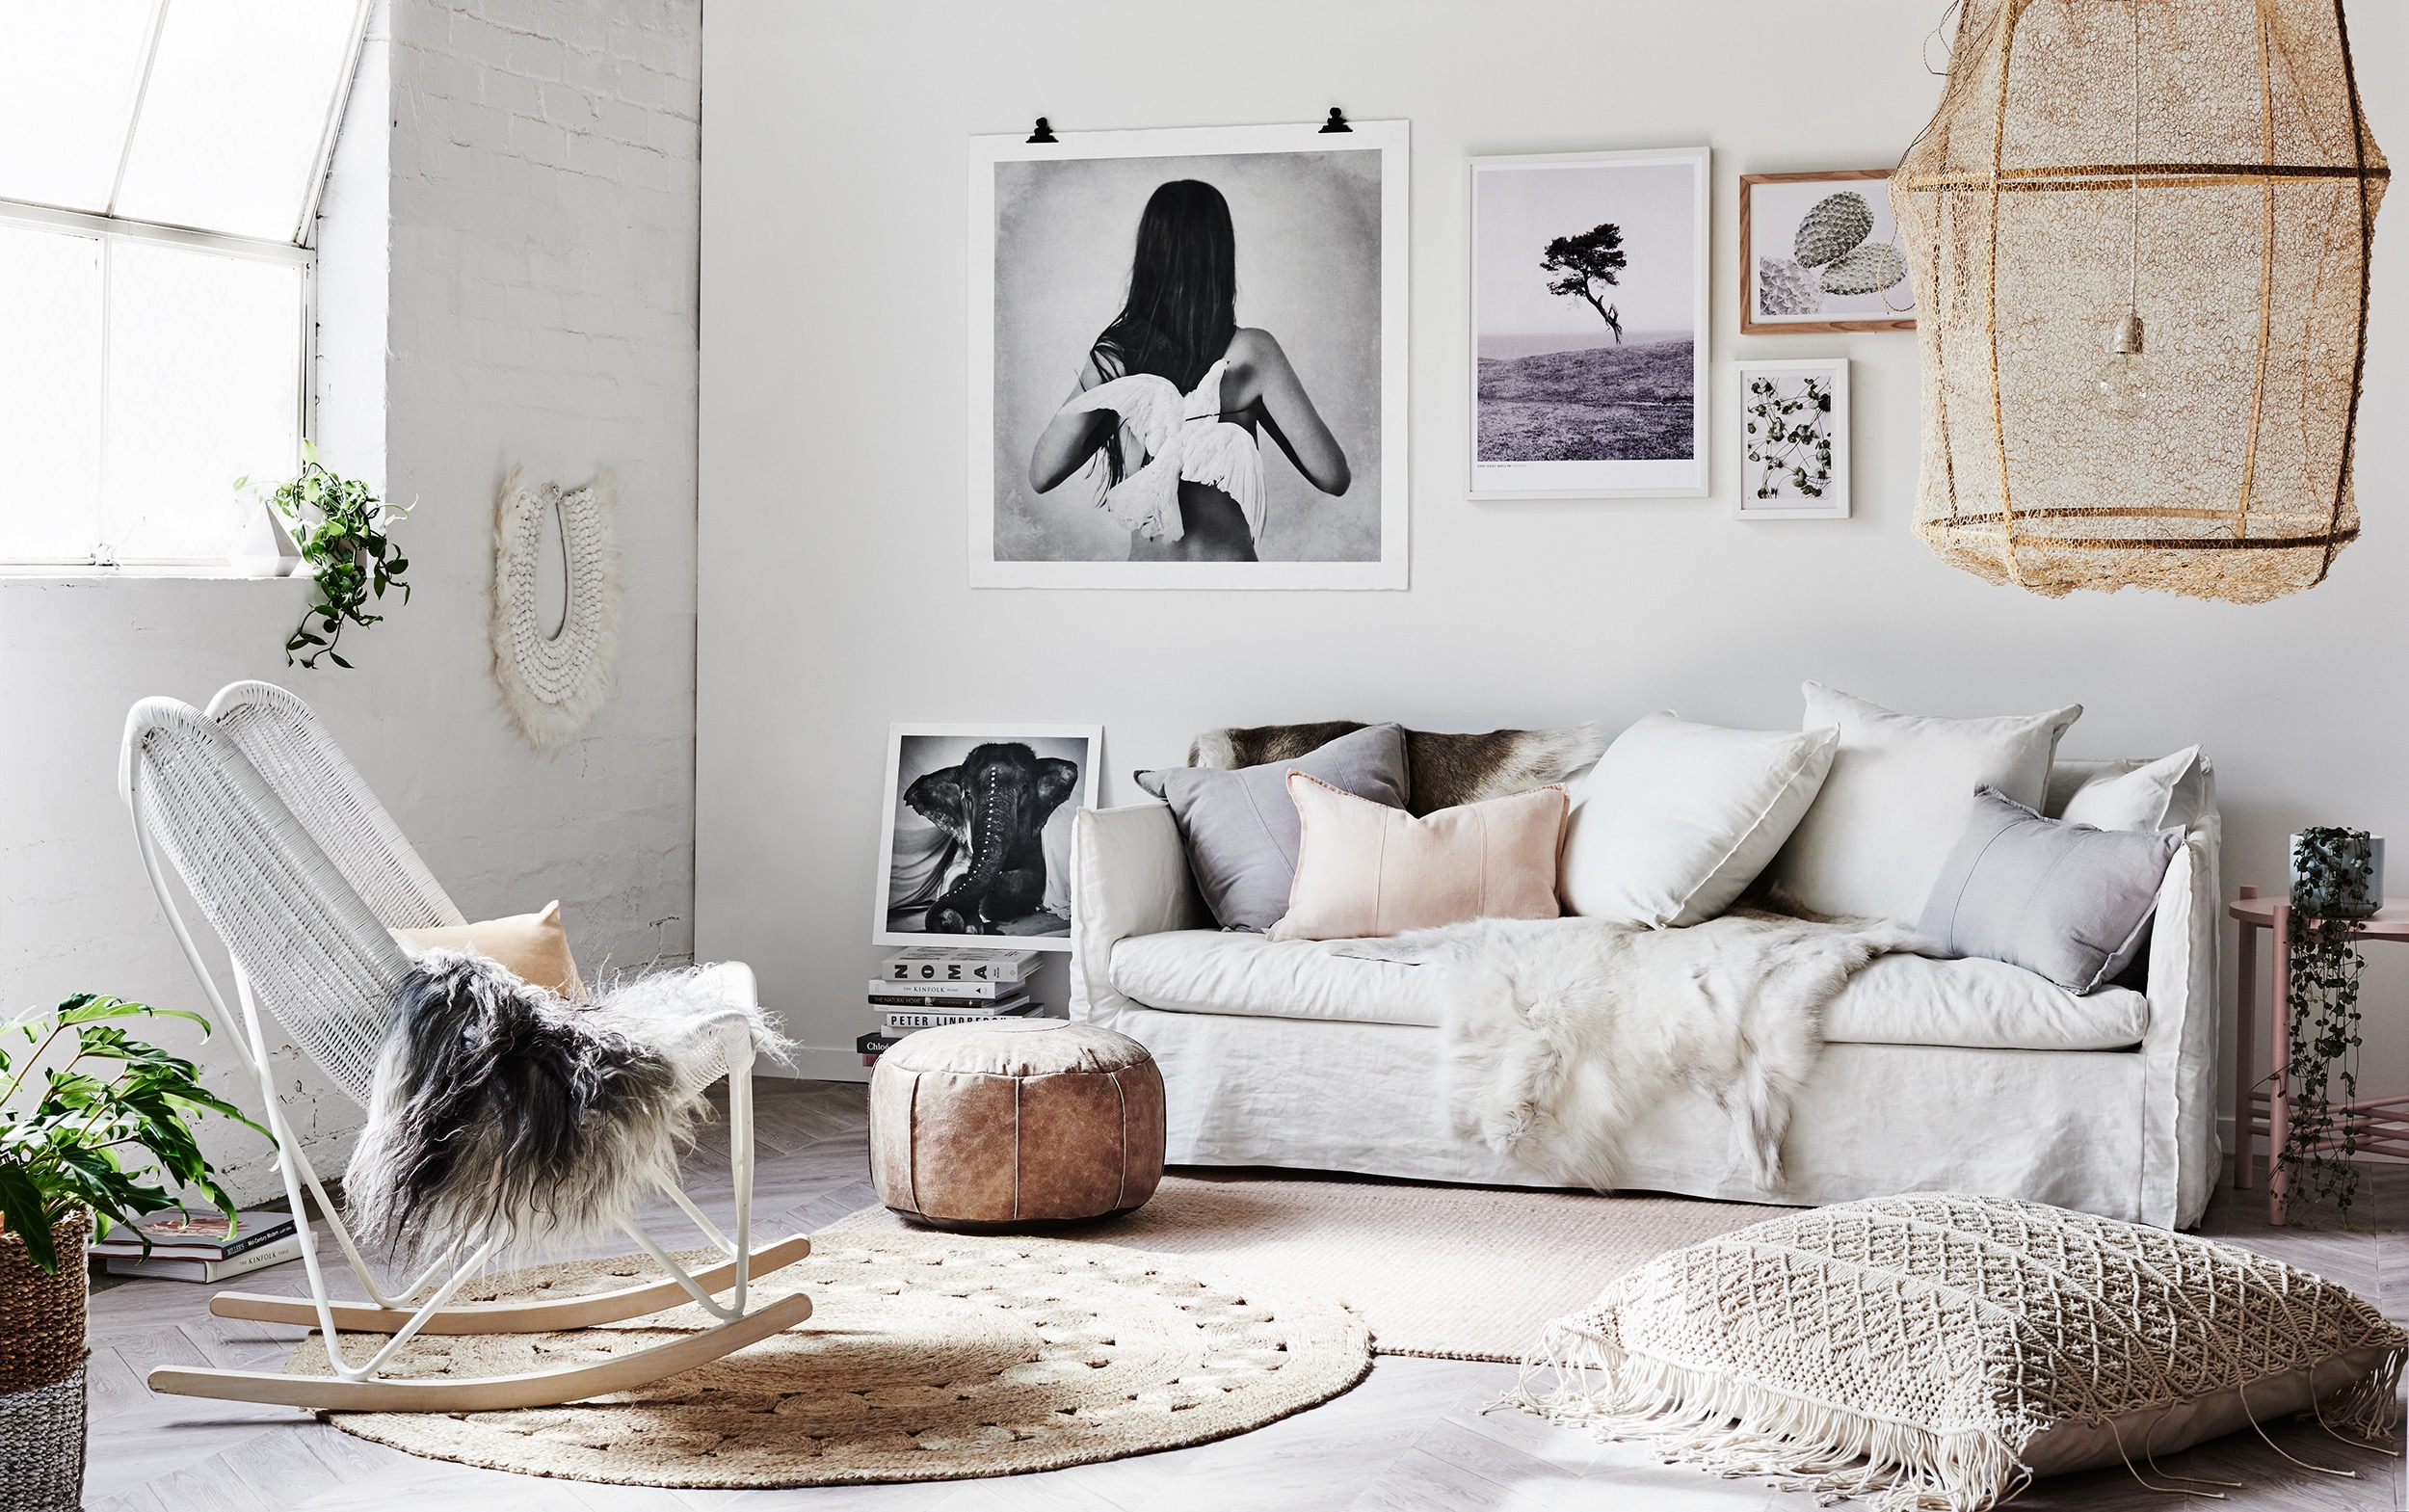 Get This Season's Bohemian Chic Look at Home